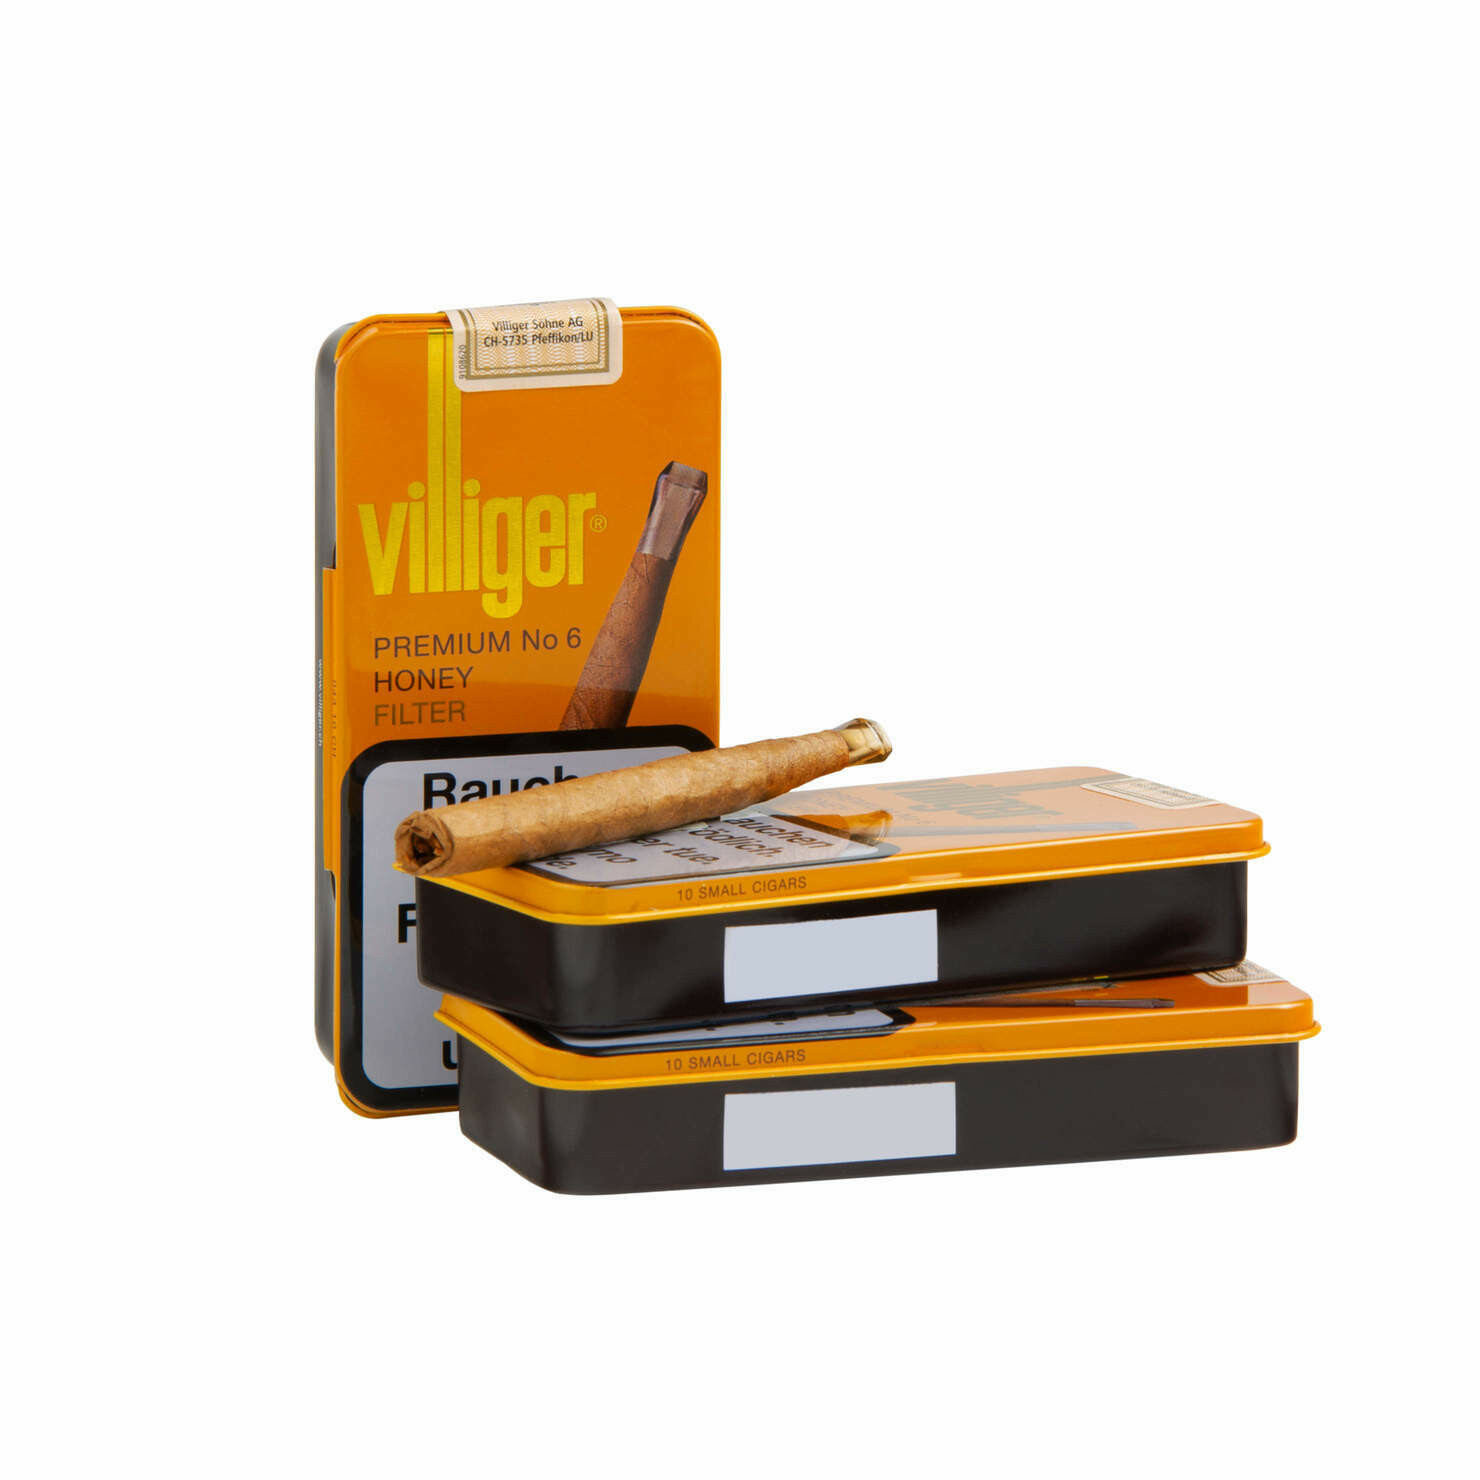 Villiger Premium No. 6 Honey 10 Pack